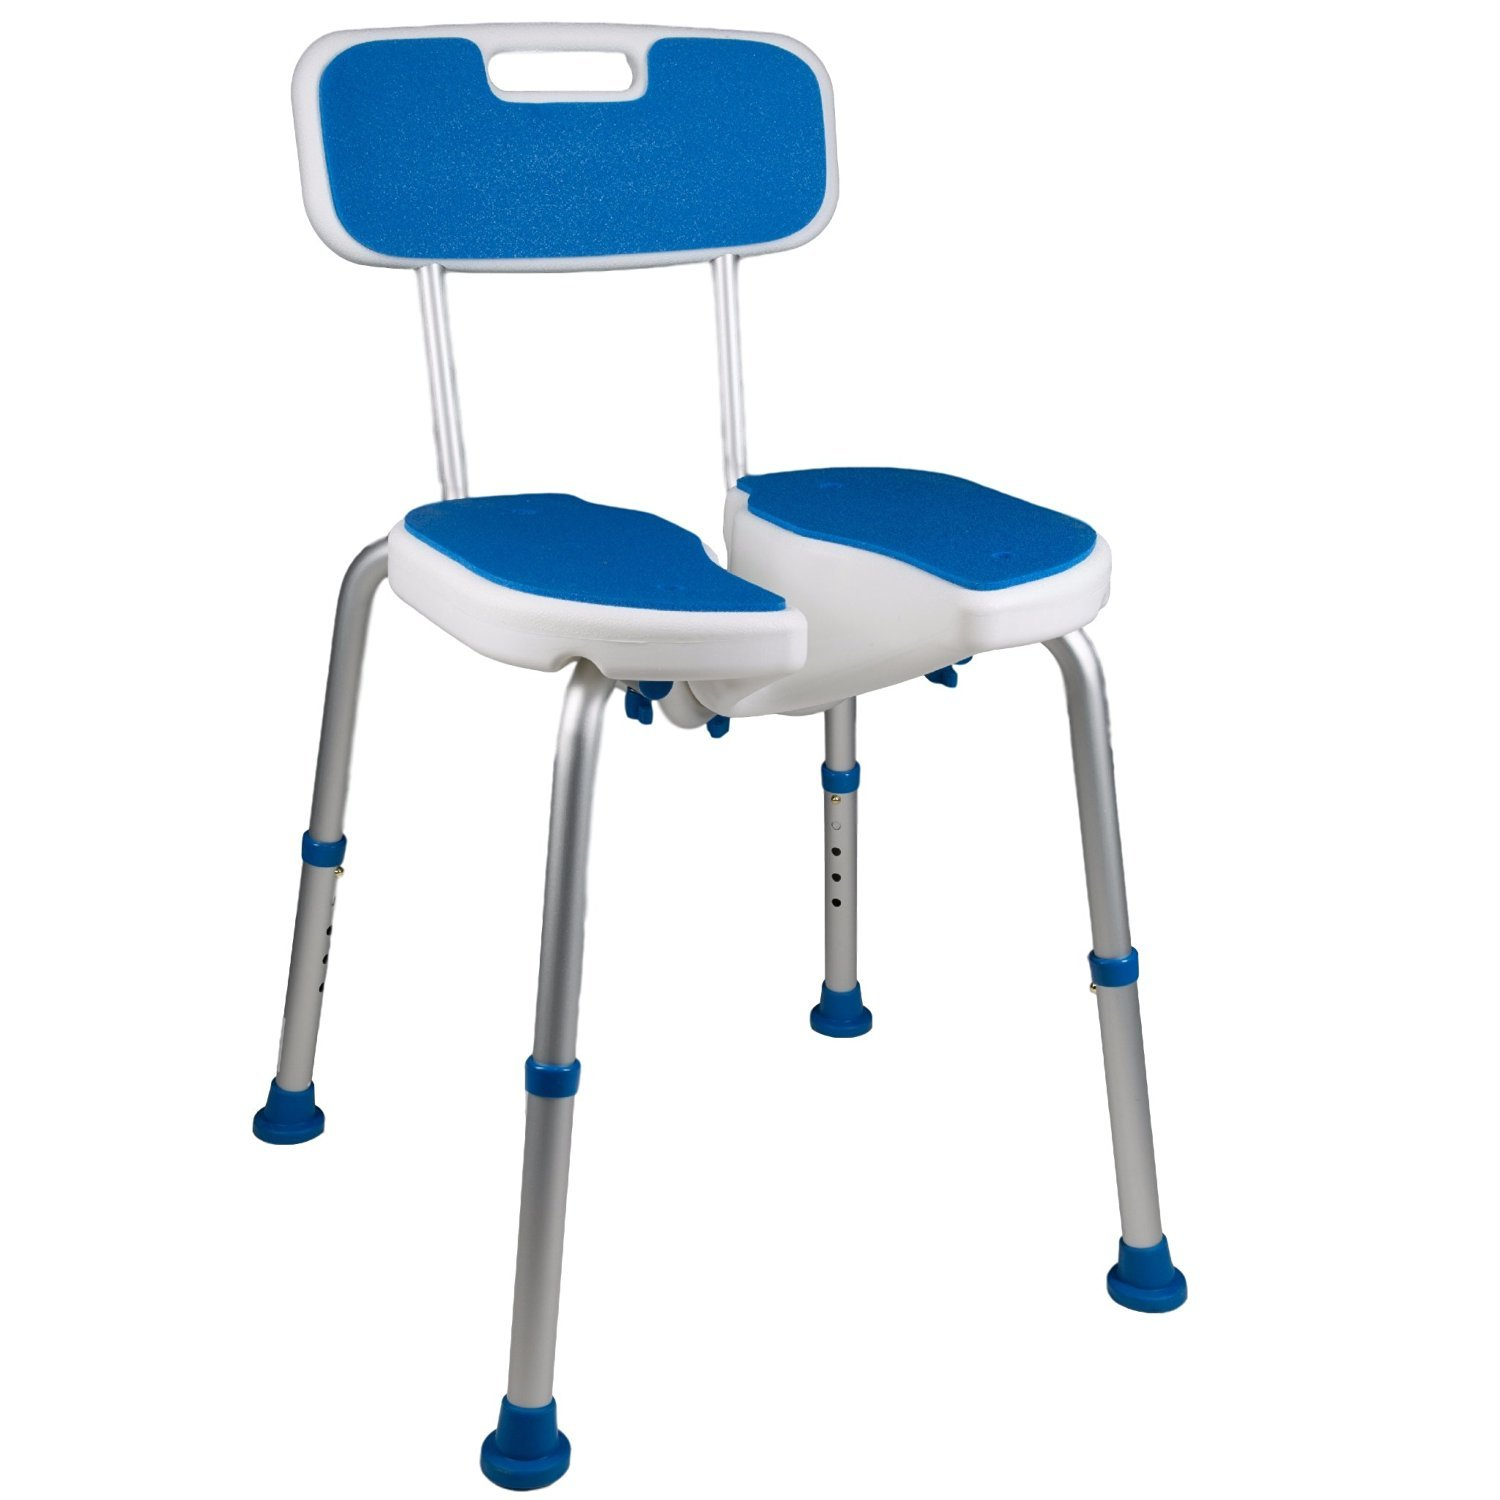 Pcp Padded Bath Shower Safety Seat with Hygienic Cutout and Backrest, White/Blue by PCP